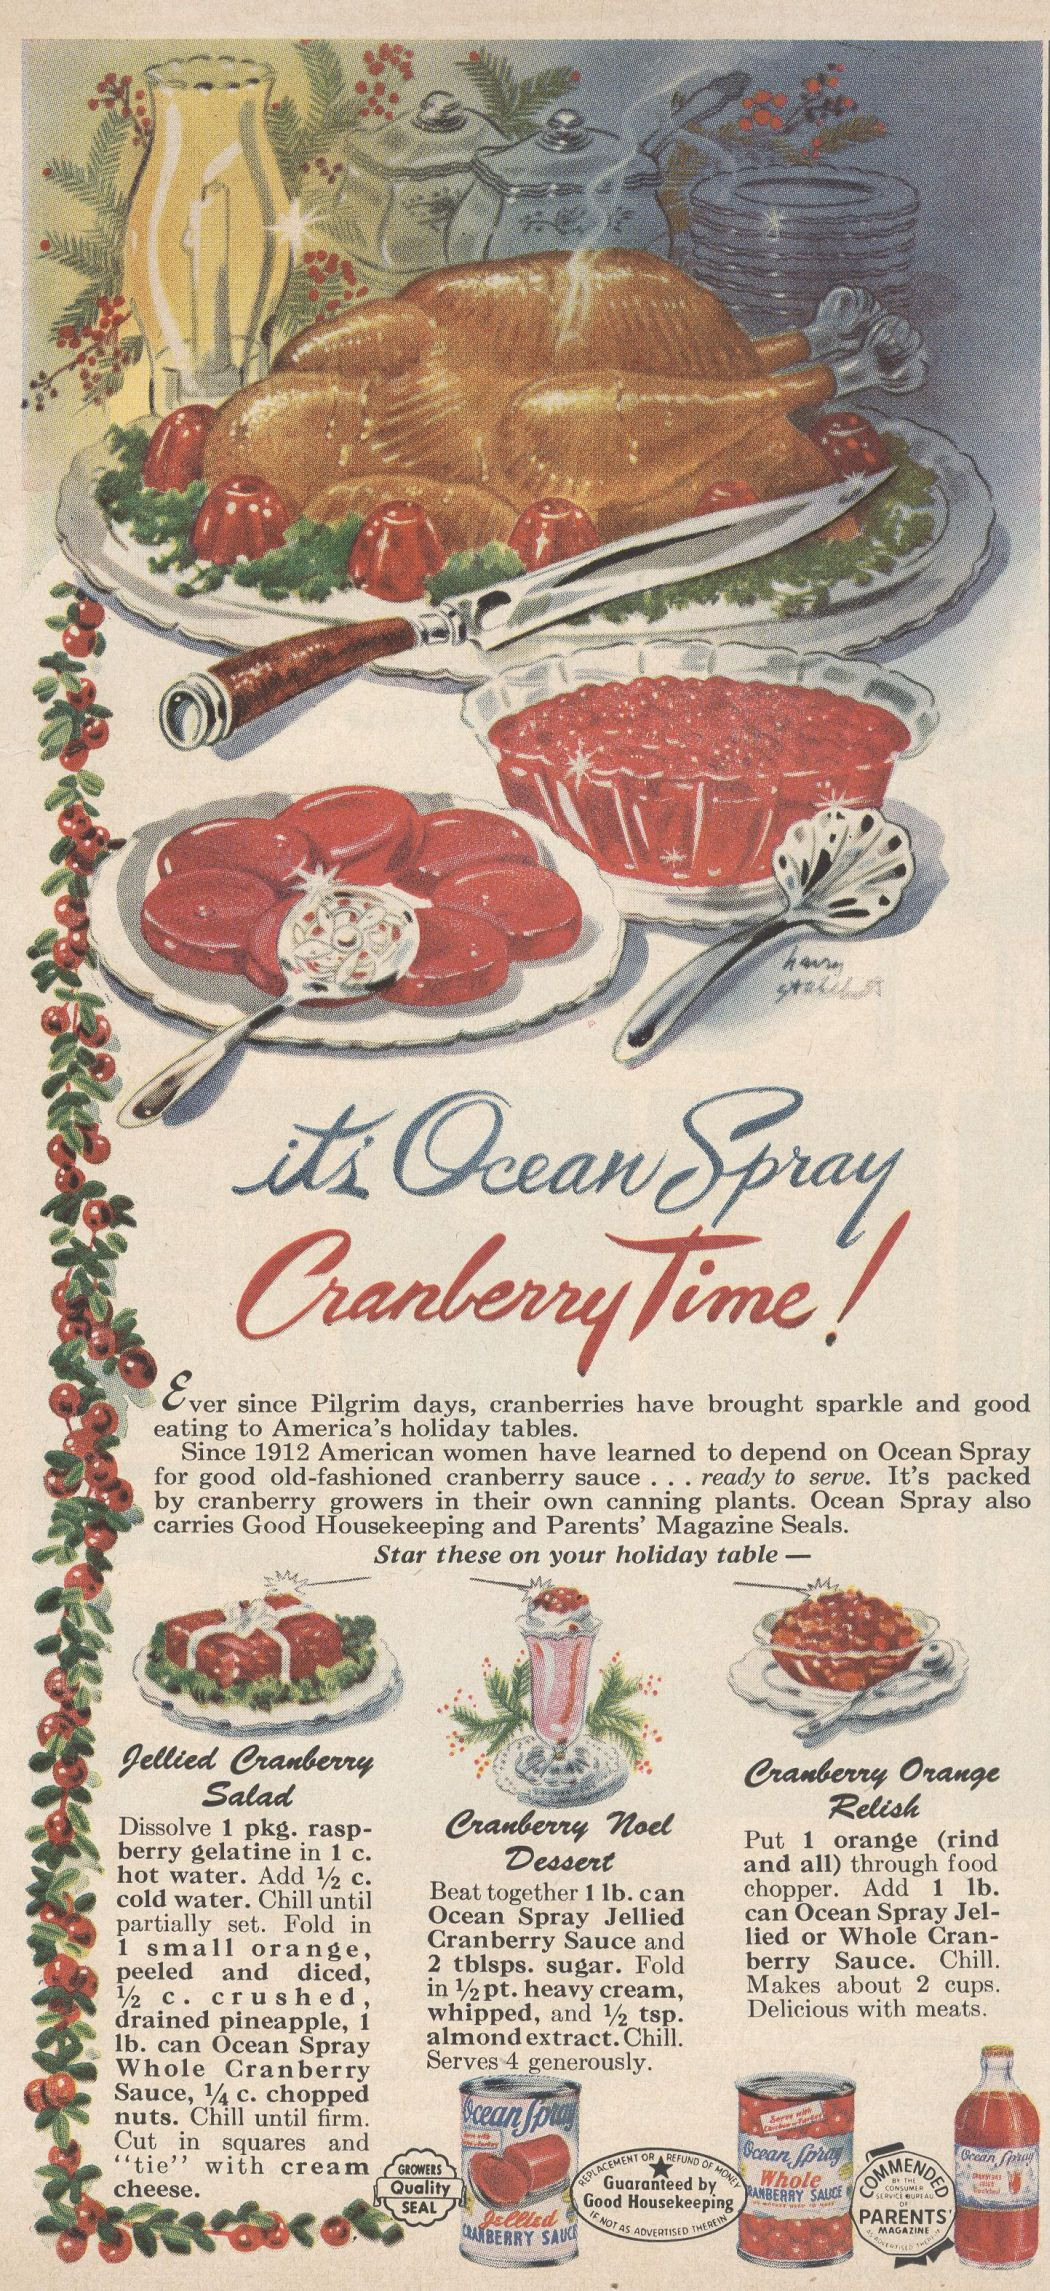 What are some recipes for relish using Ocean Spray cranberries?